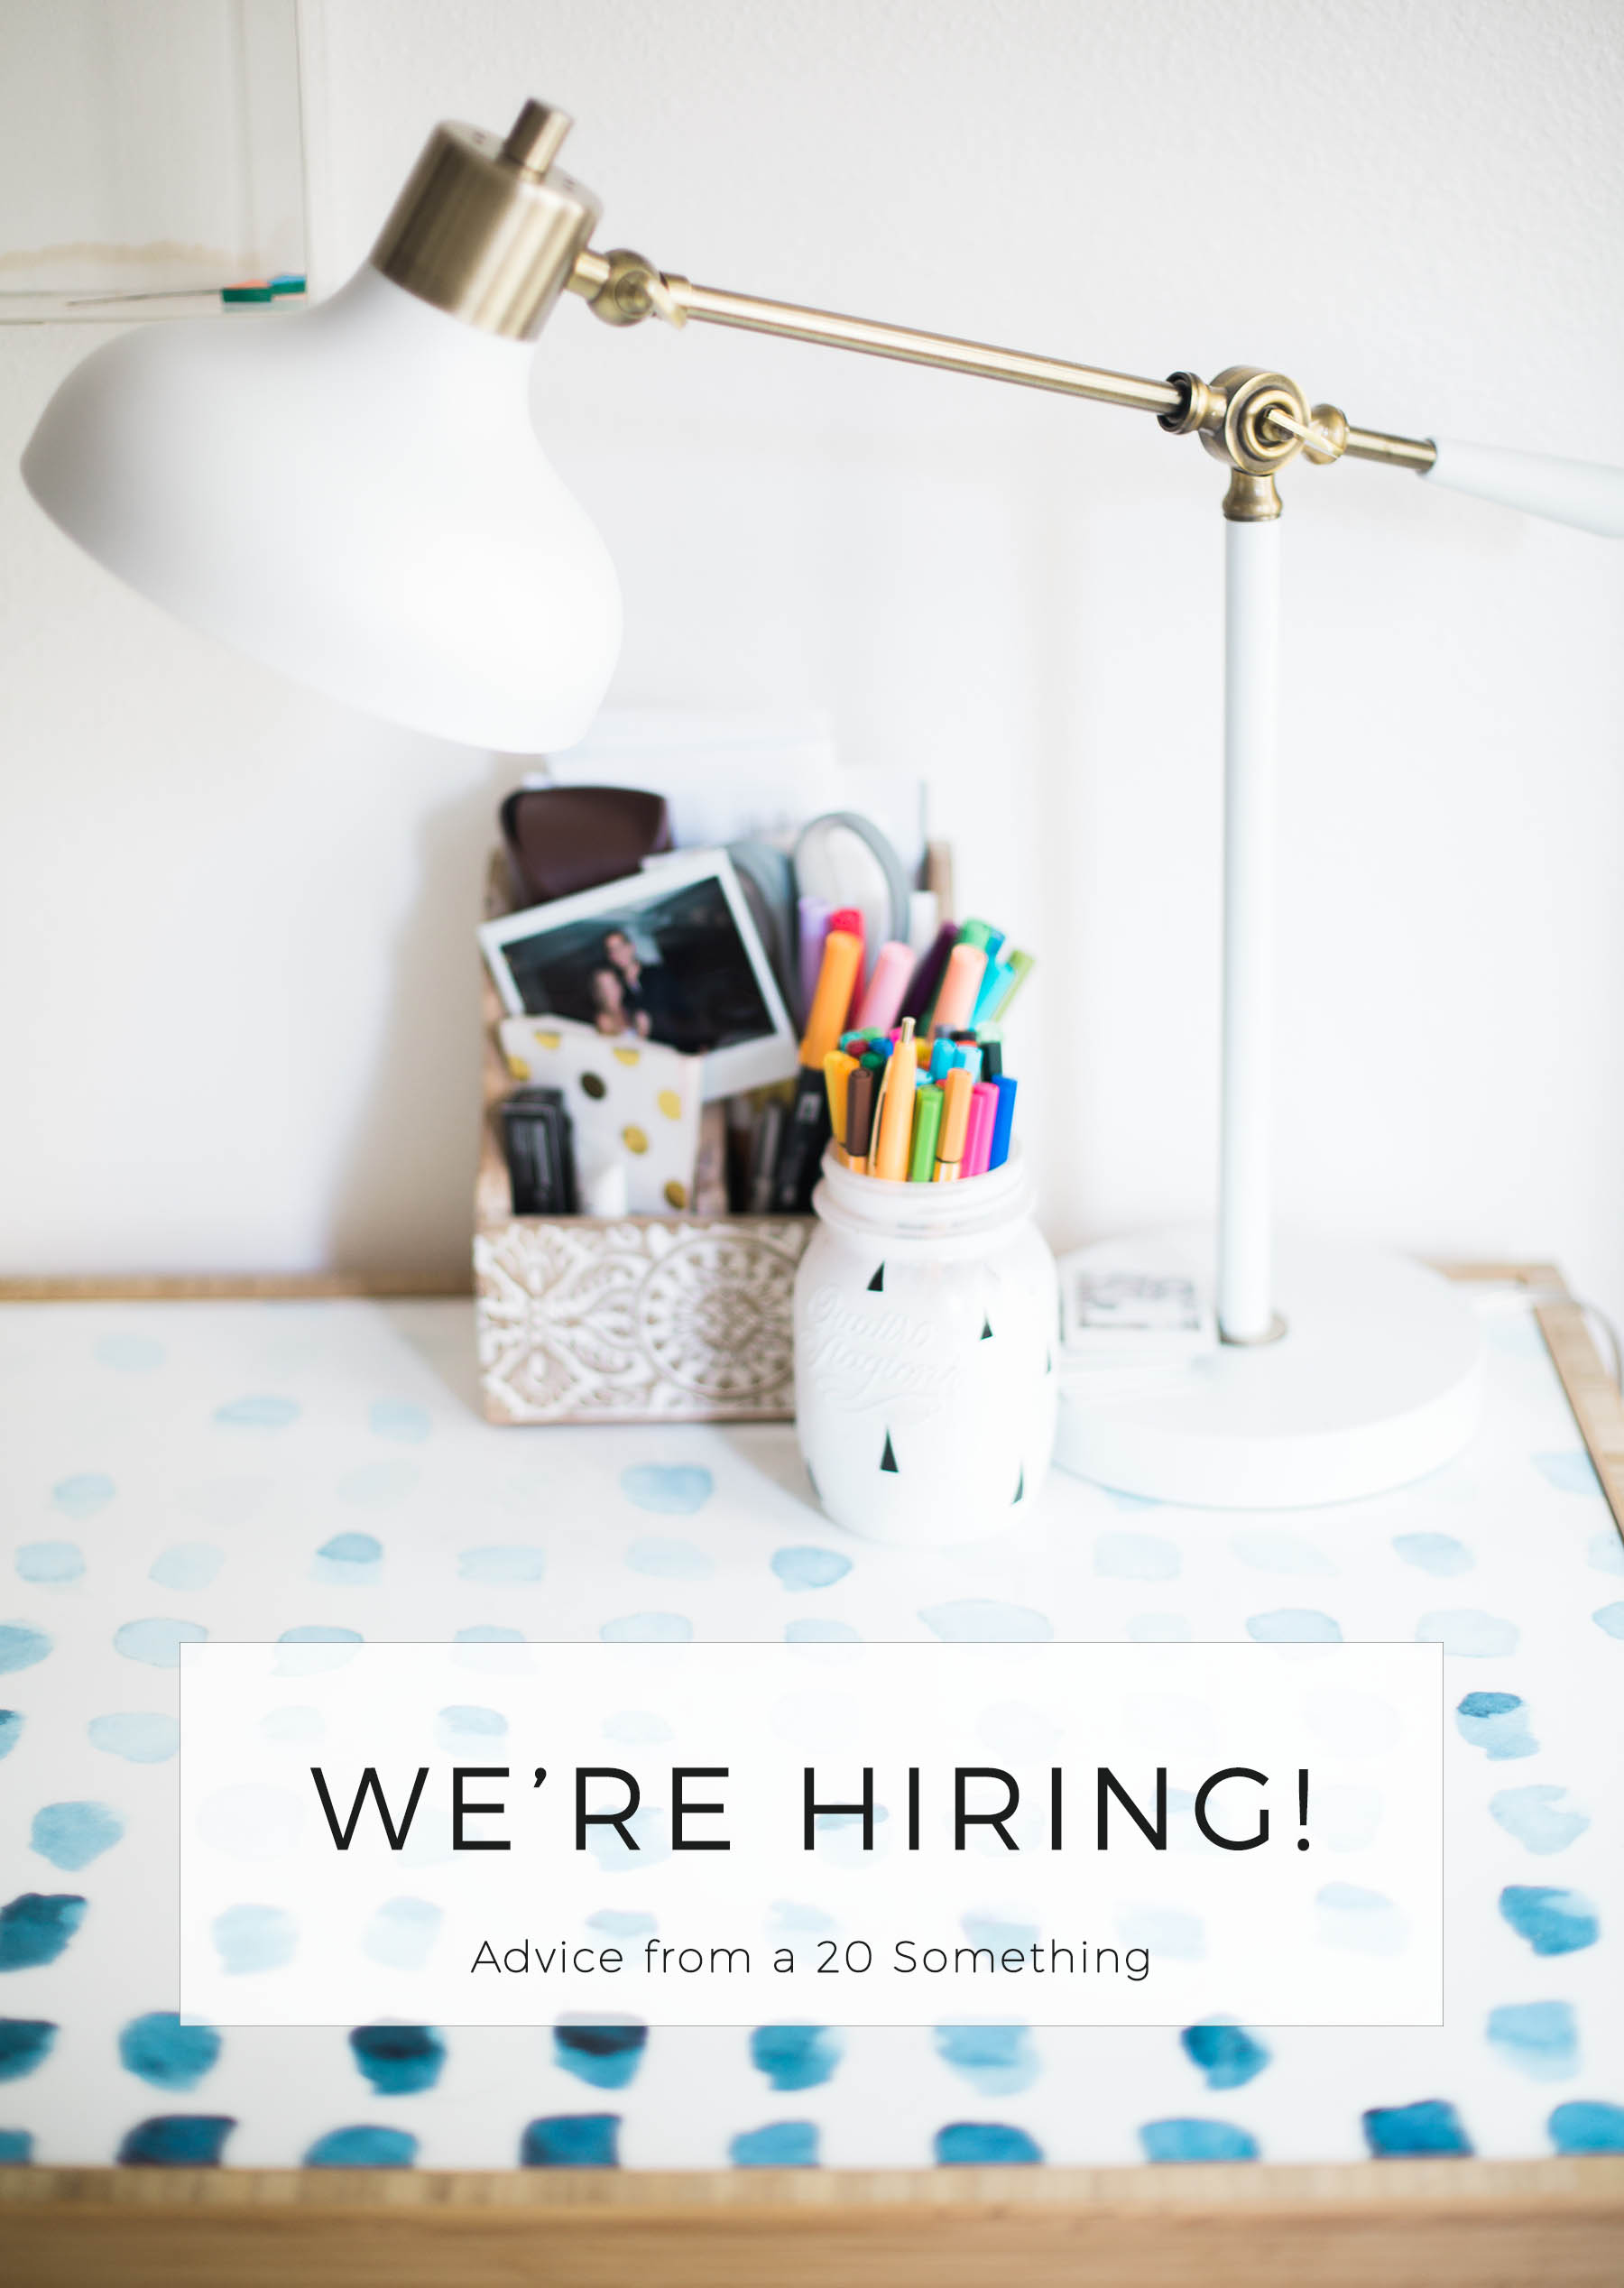 Amanda Holstein is hiring an intern for Advice from a 20 Something.